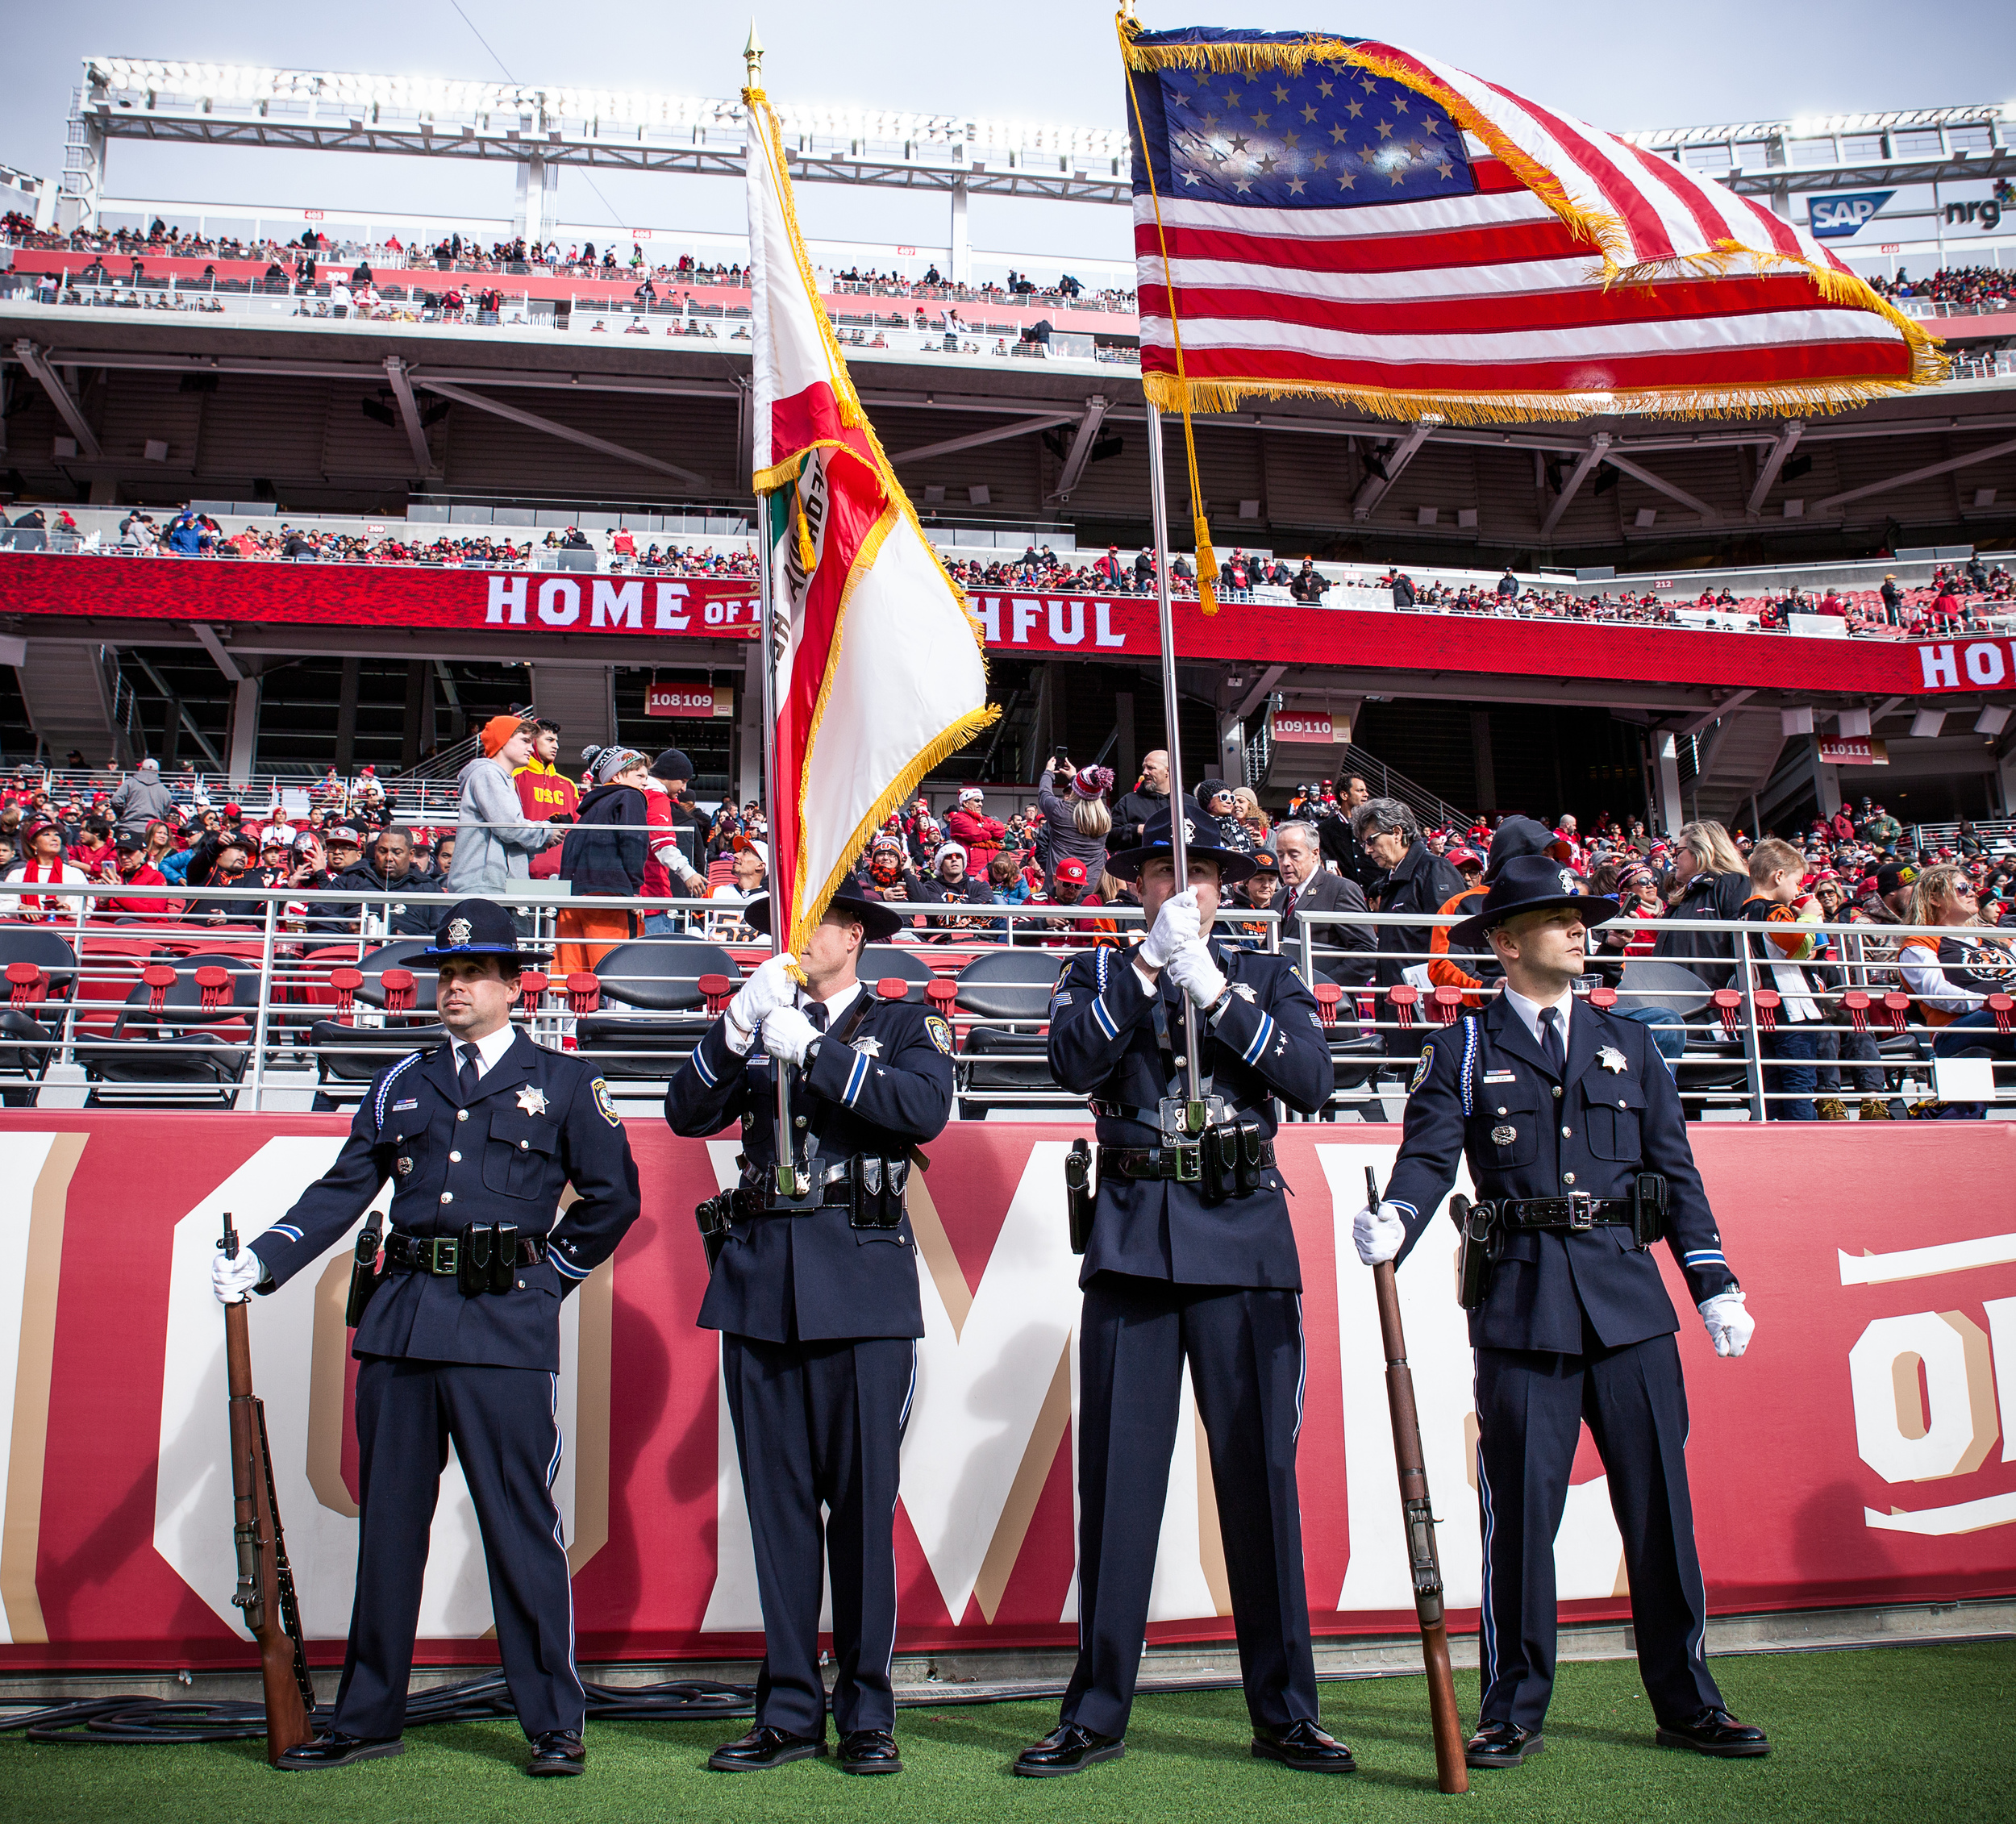 SCPD_honor guard_stadium-2.jpg